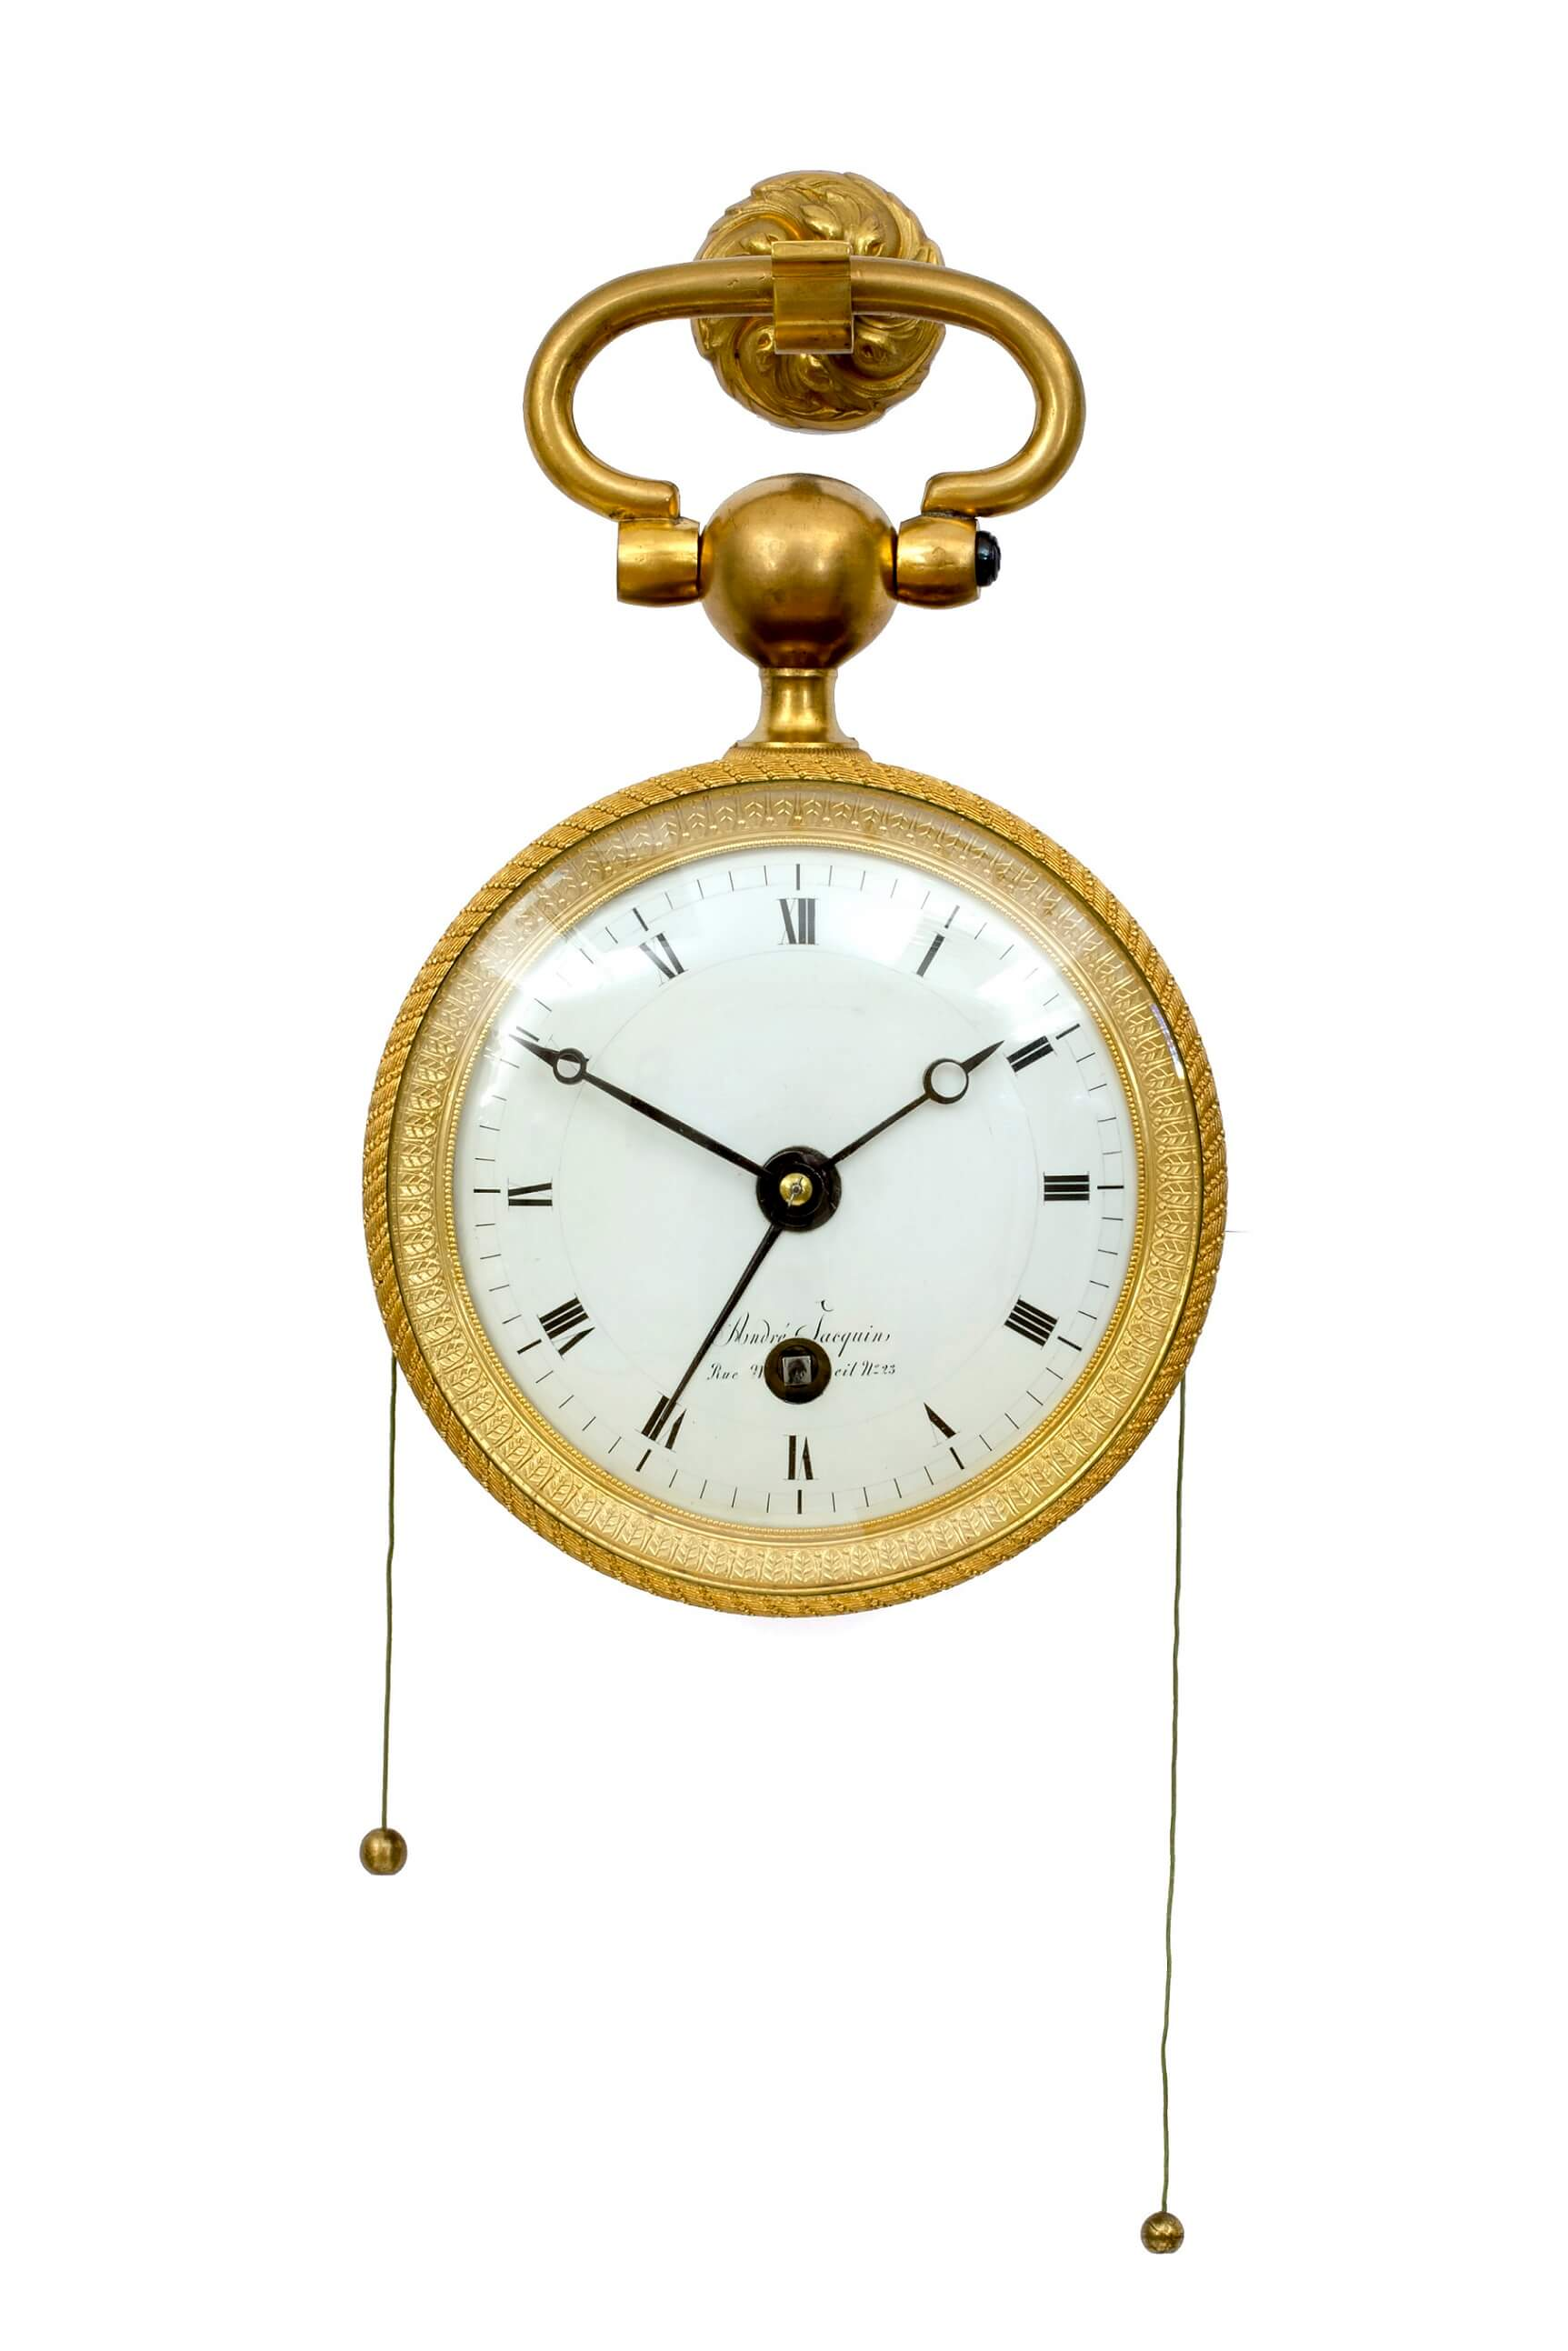 French-antique clock-pendule d'officier-quarter repeat-ormolu-Empire-